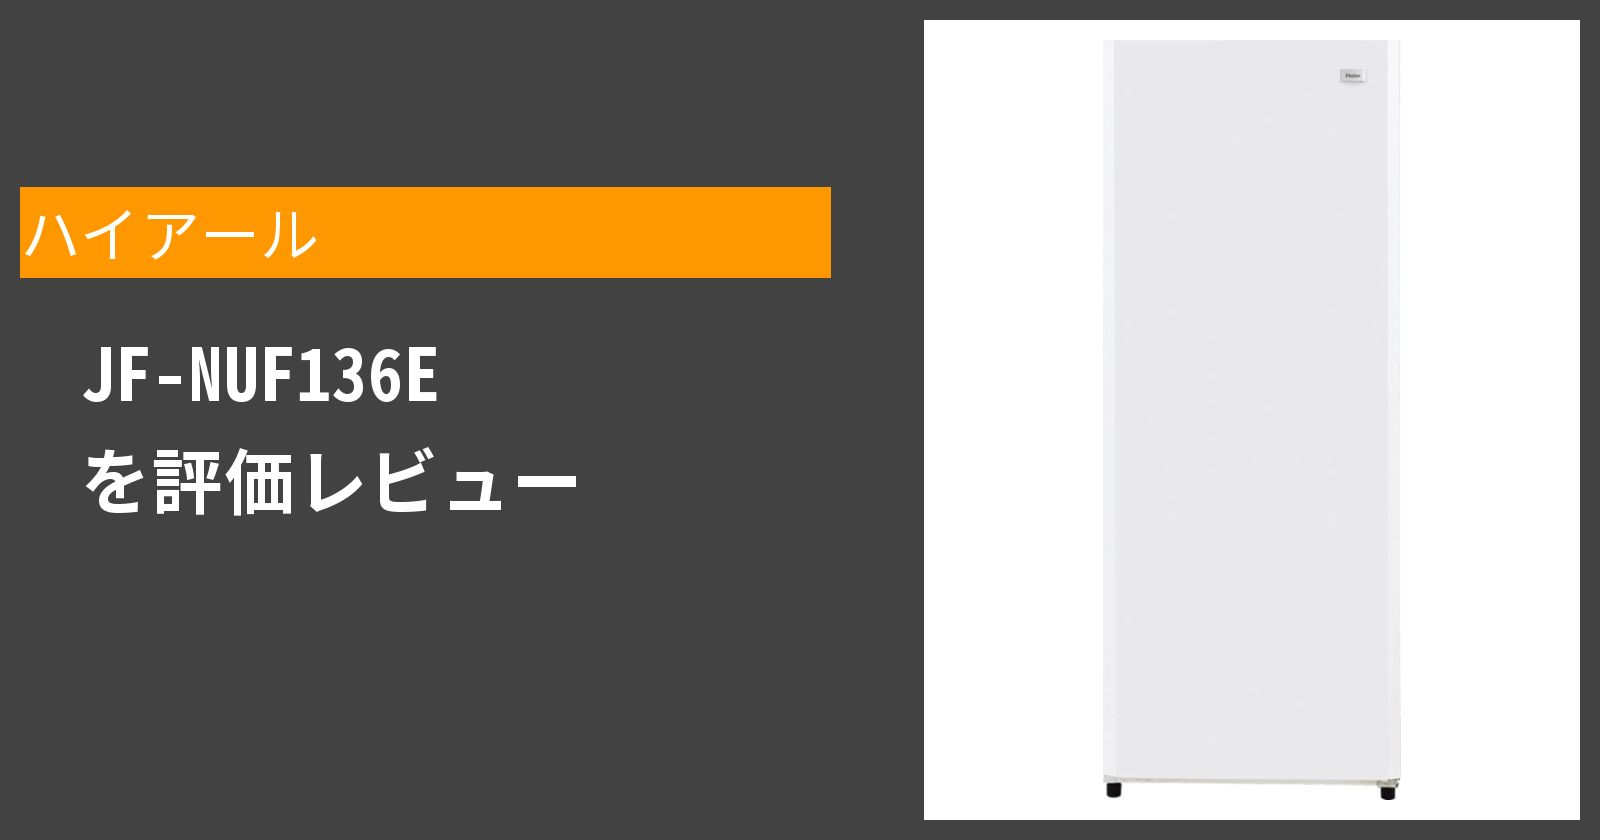 JF-NUF136Eを徹底評価